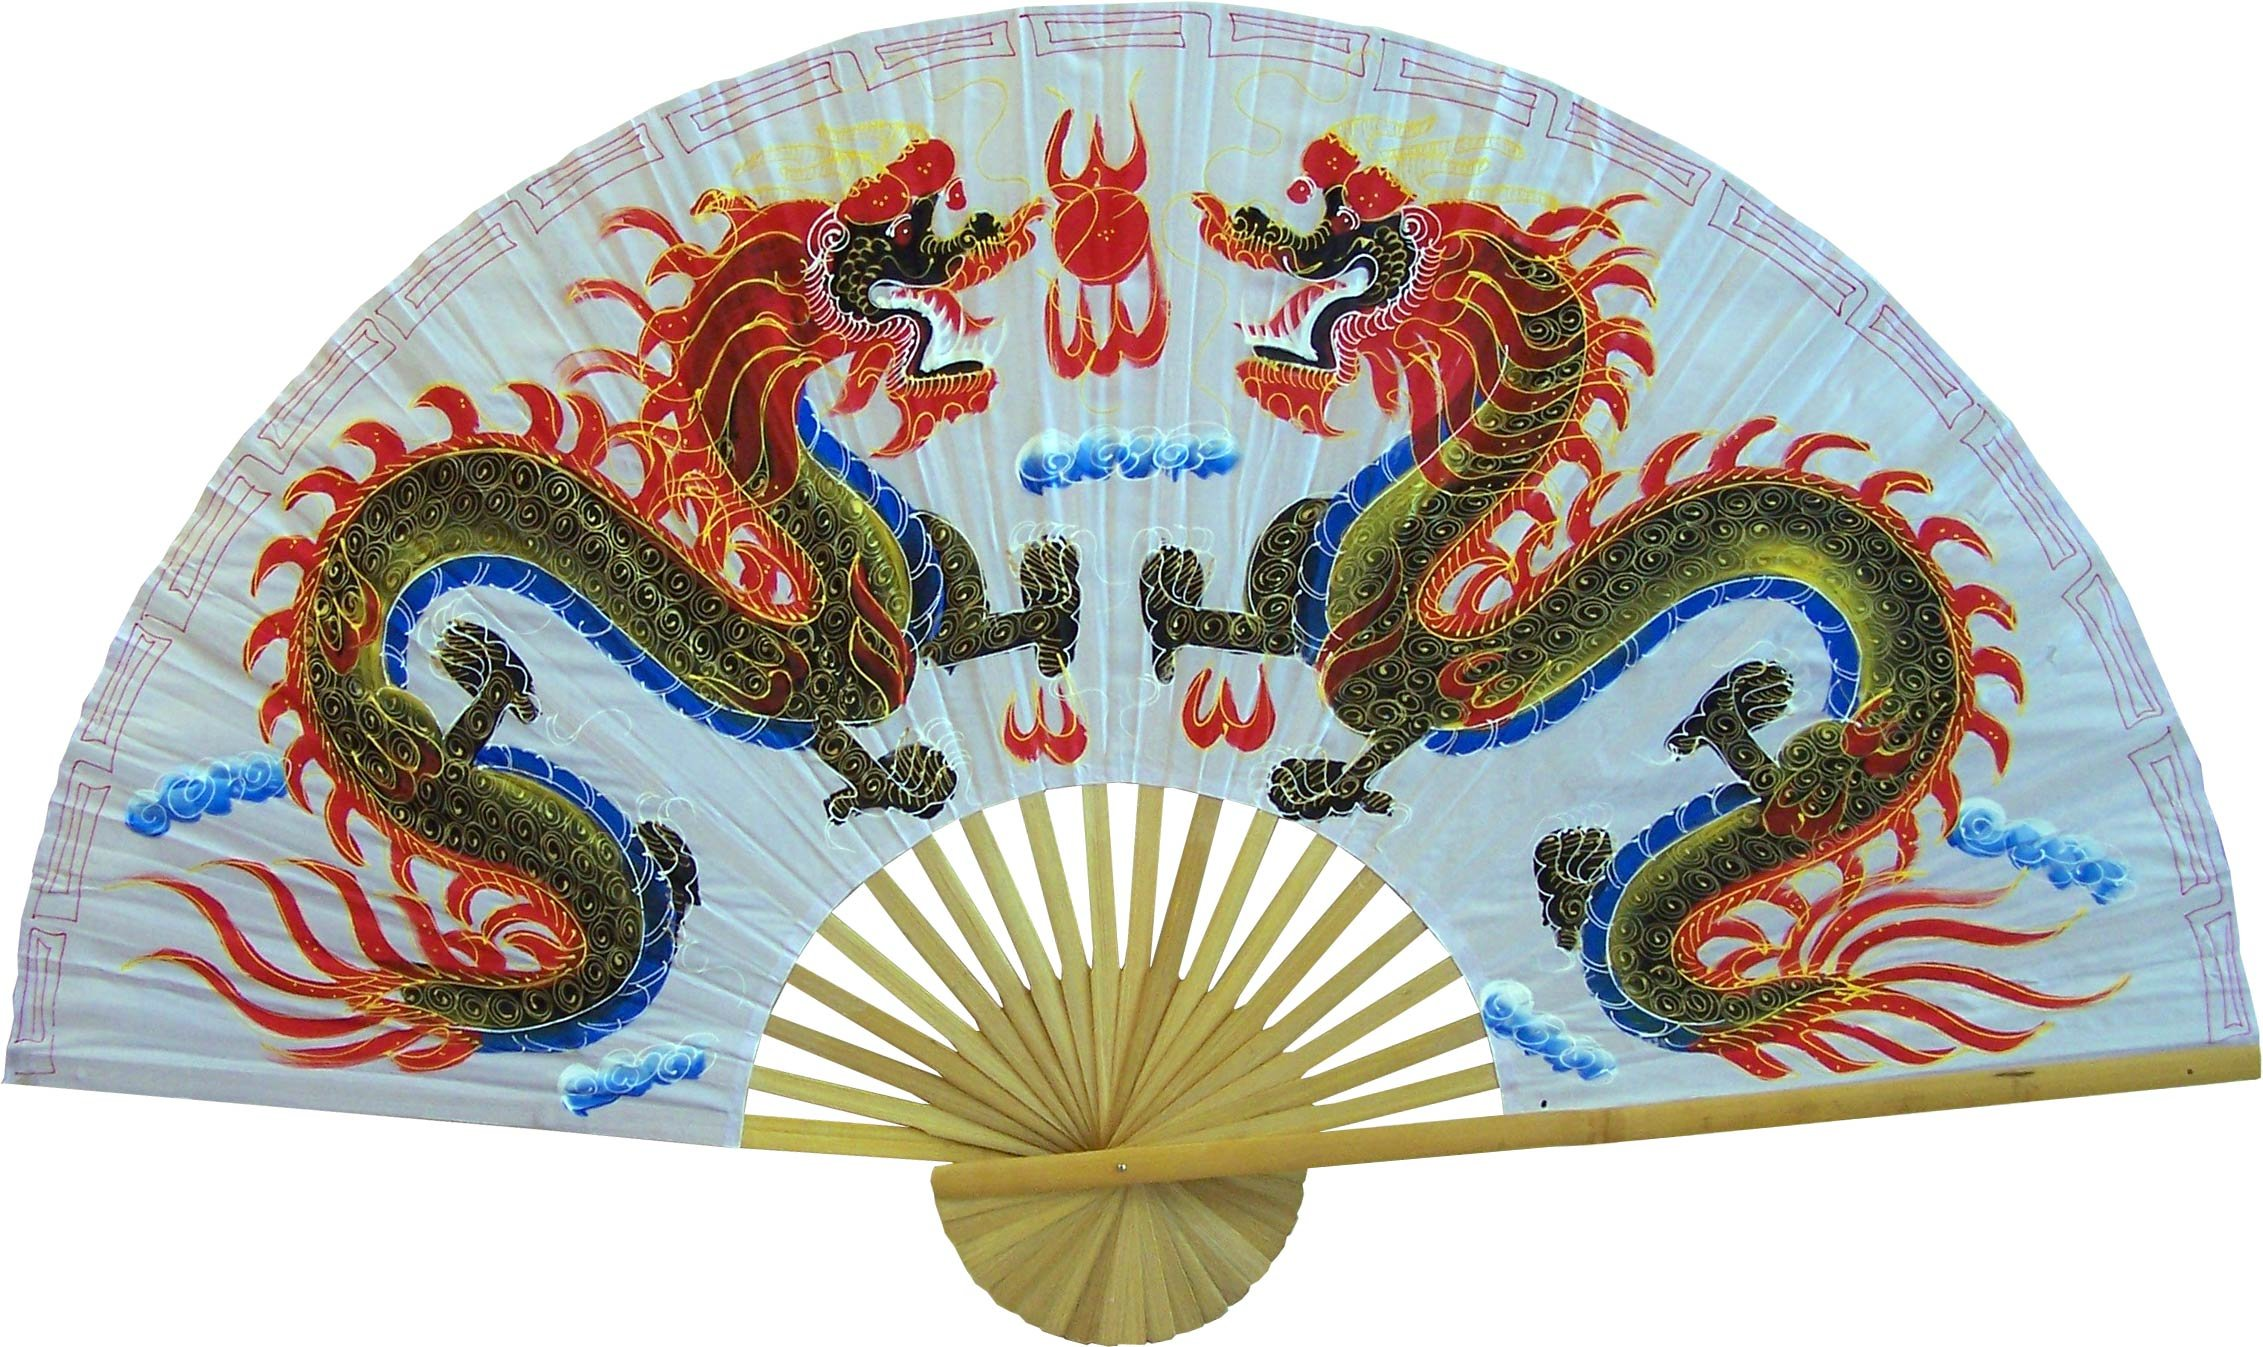 Large 60'' Folding Wall Fan - White Dragons - Original Hand-painted